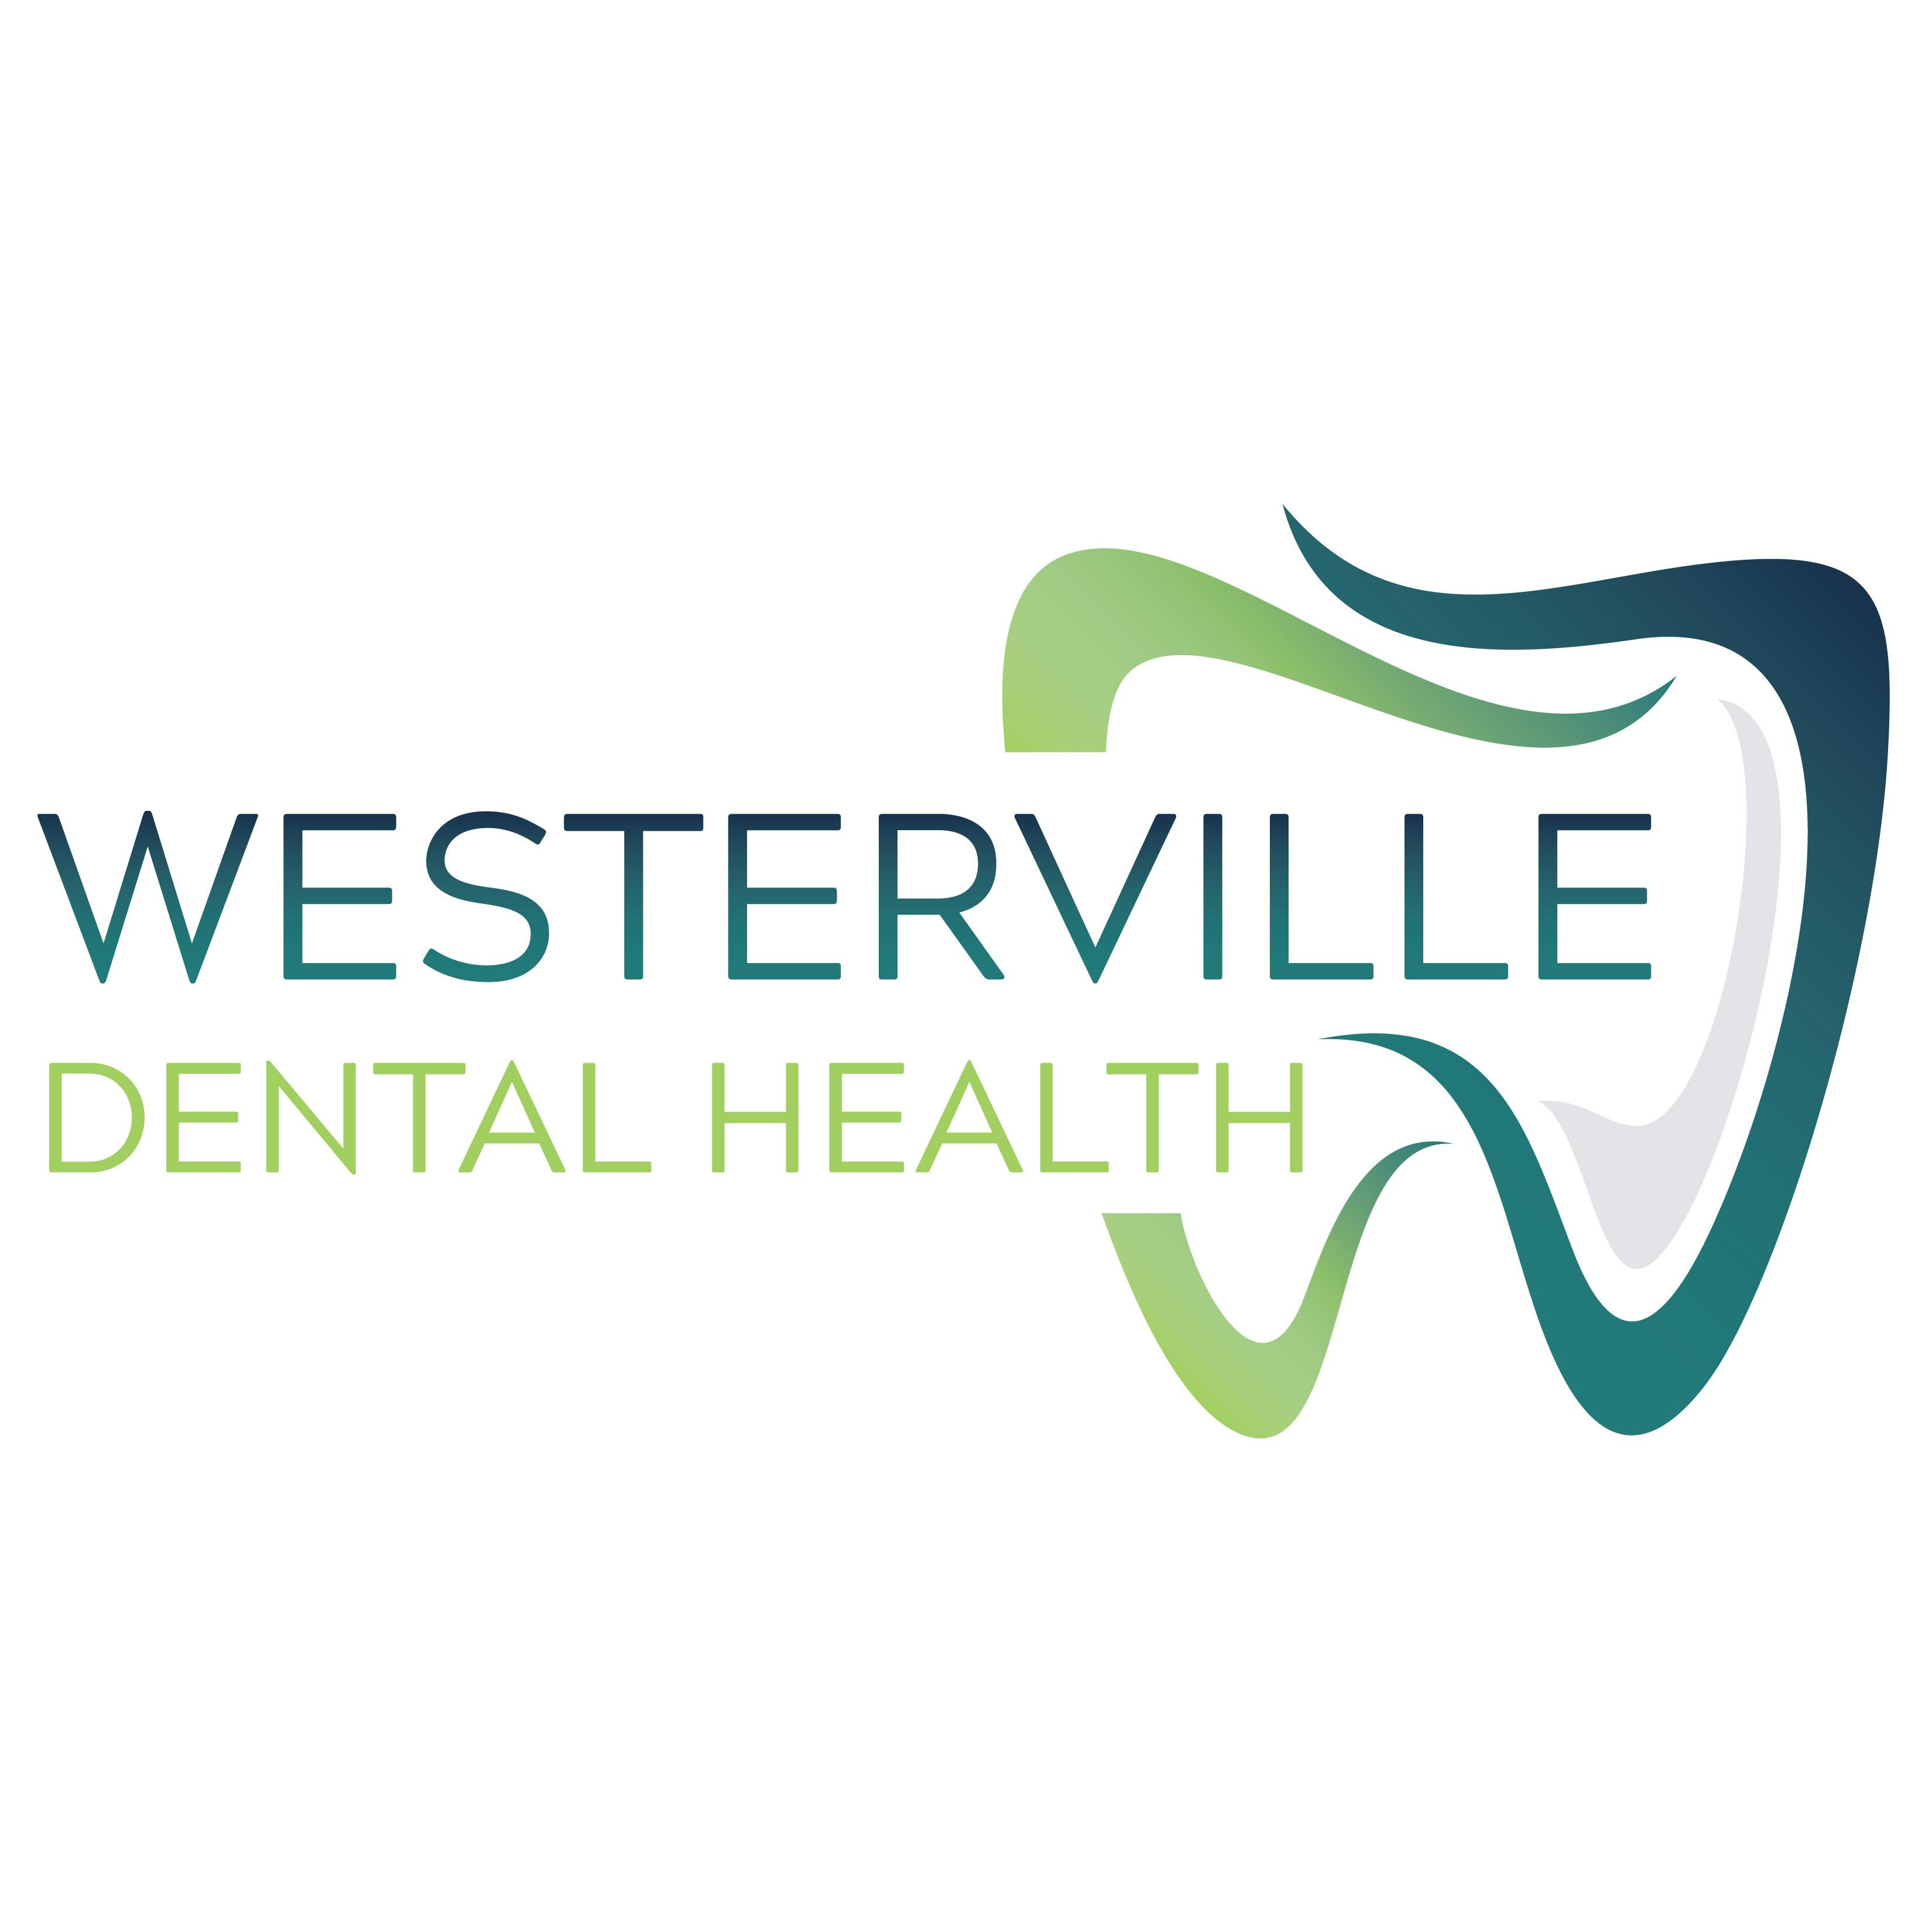 Westerville Dental Health: Stephen R. Malik, DDS